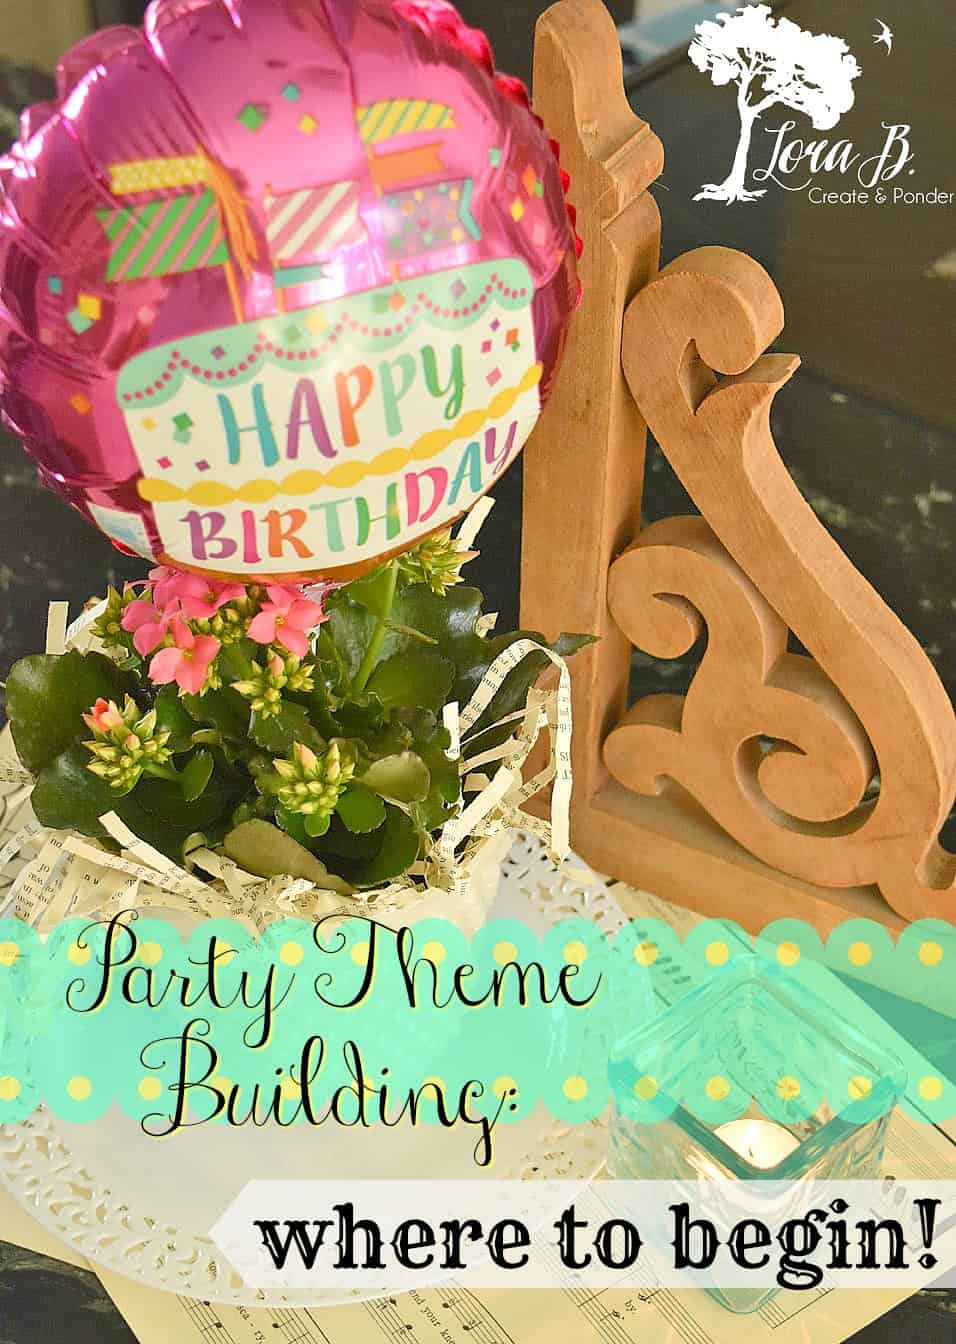 Building a theme for a party should start with the birthday person